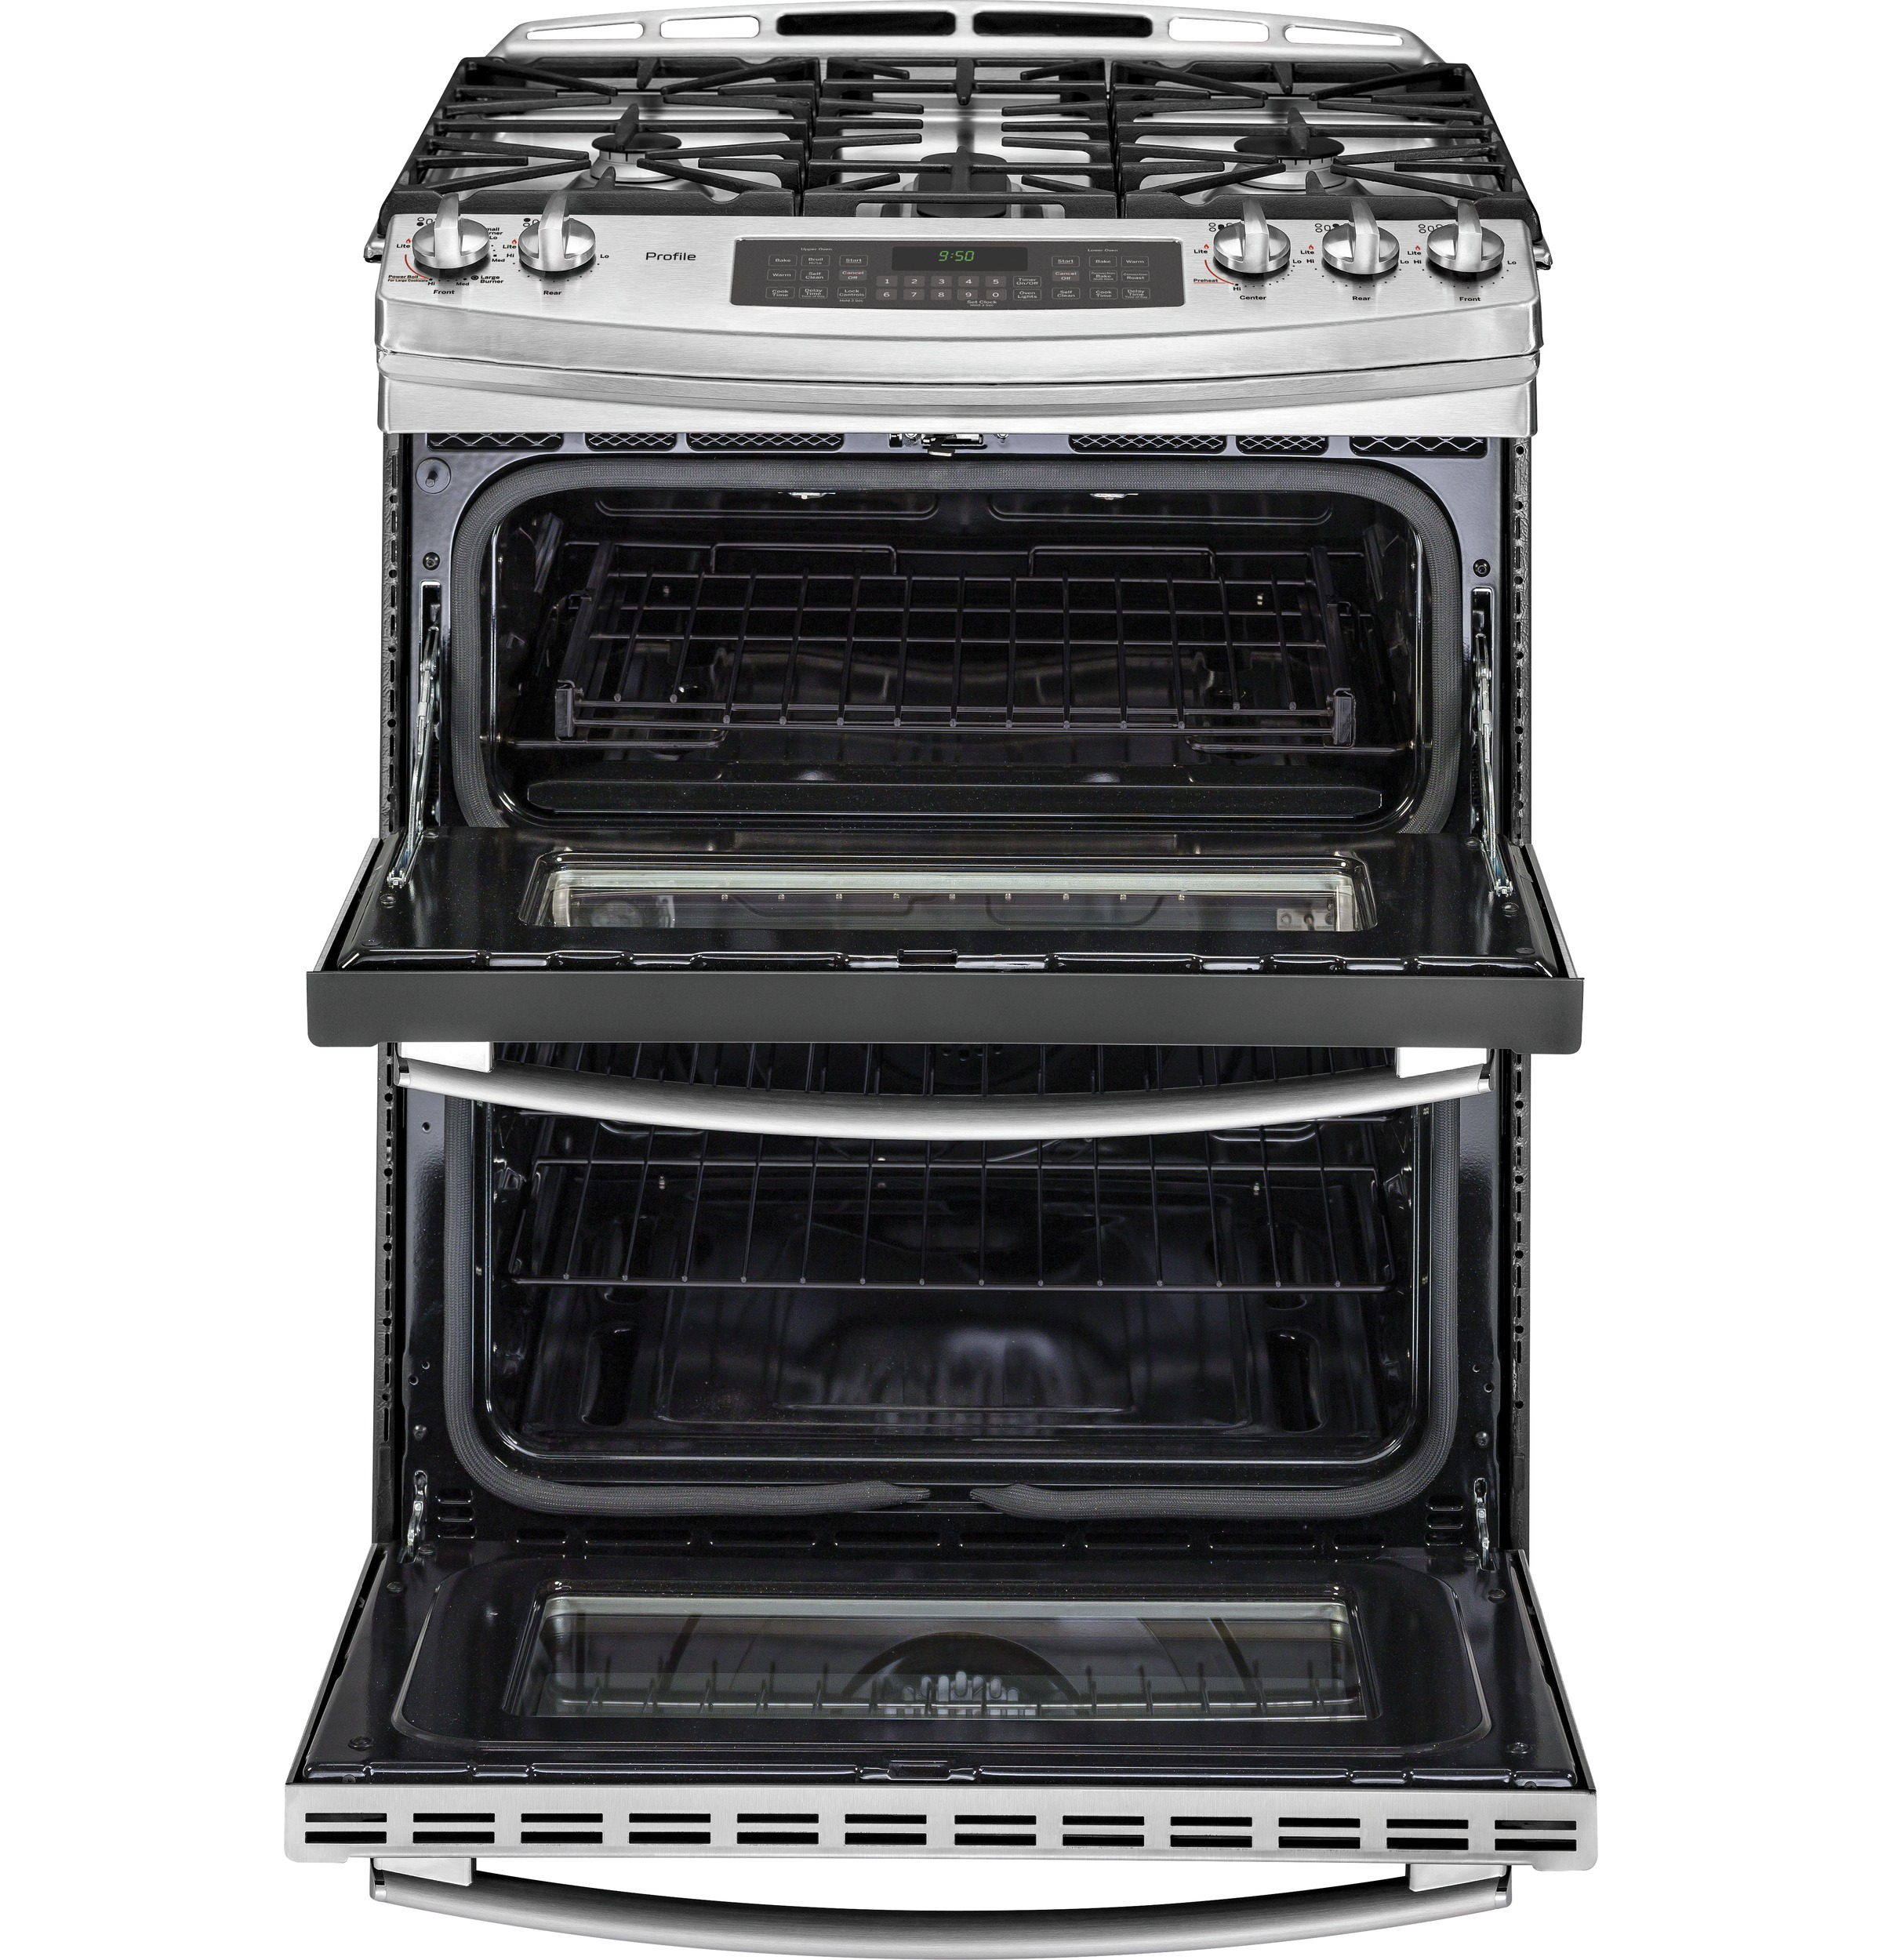 Lg double oven gas range reviews - Product Image Product Image Product Image